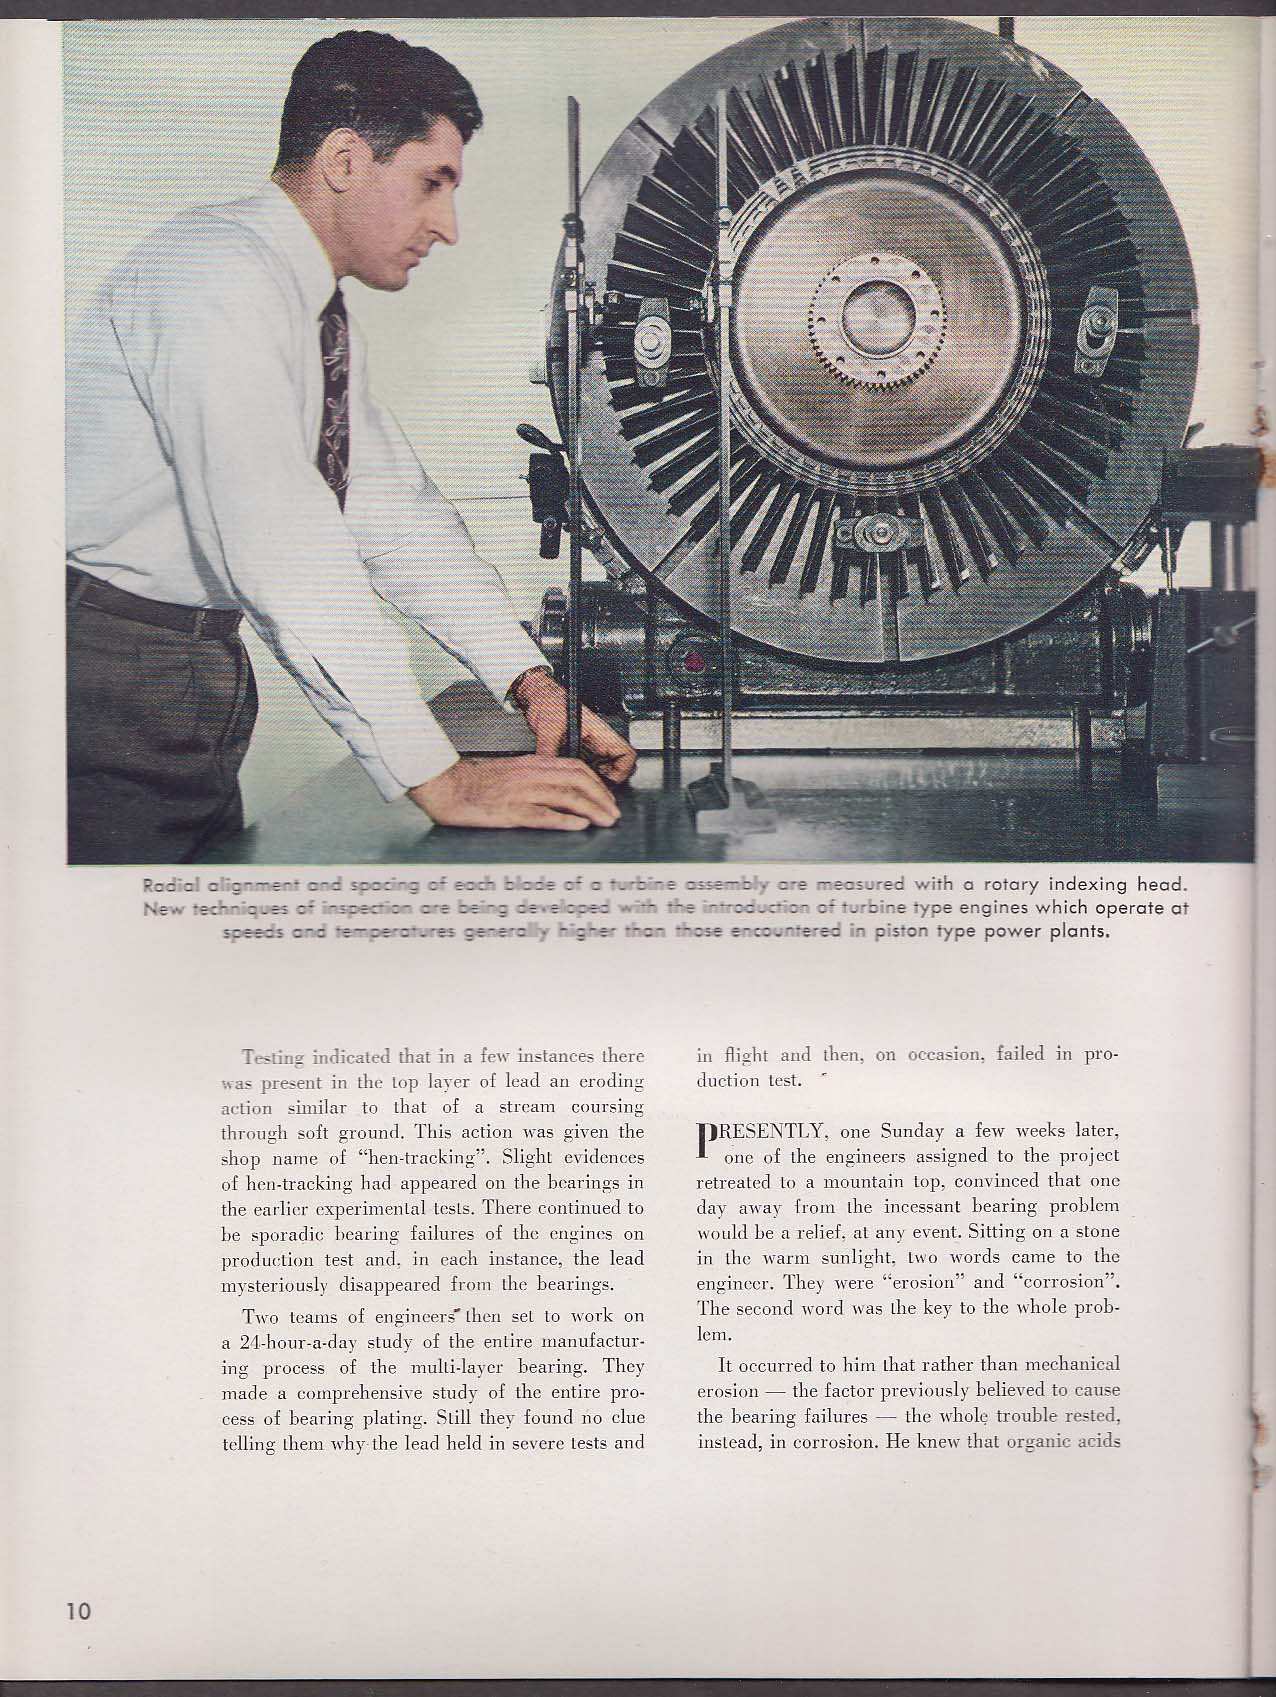 United Aircraft Corporation Pictorial Report 1948